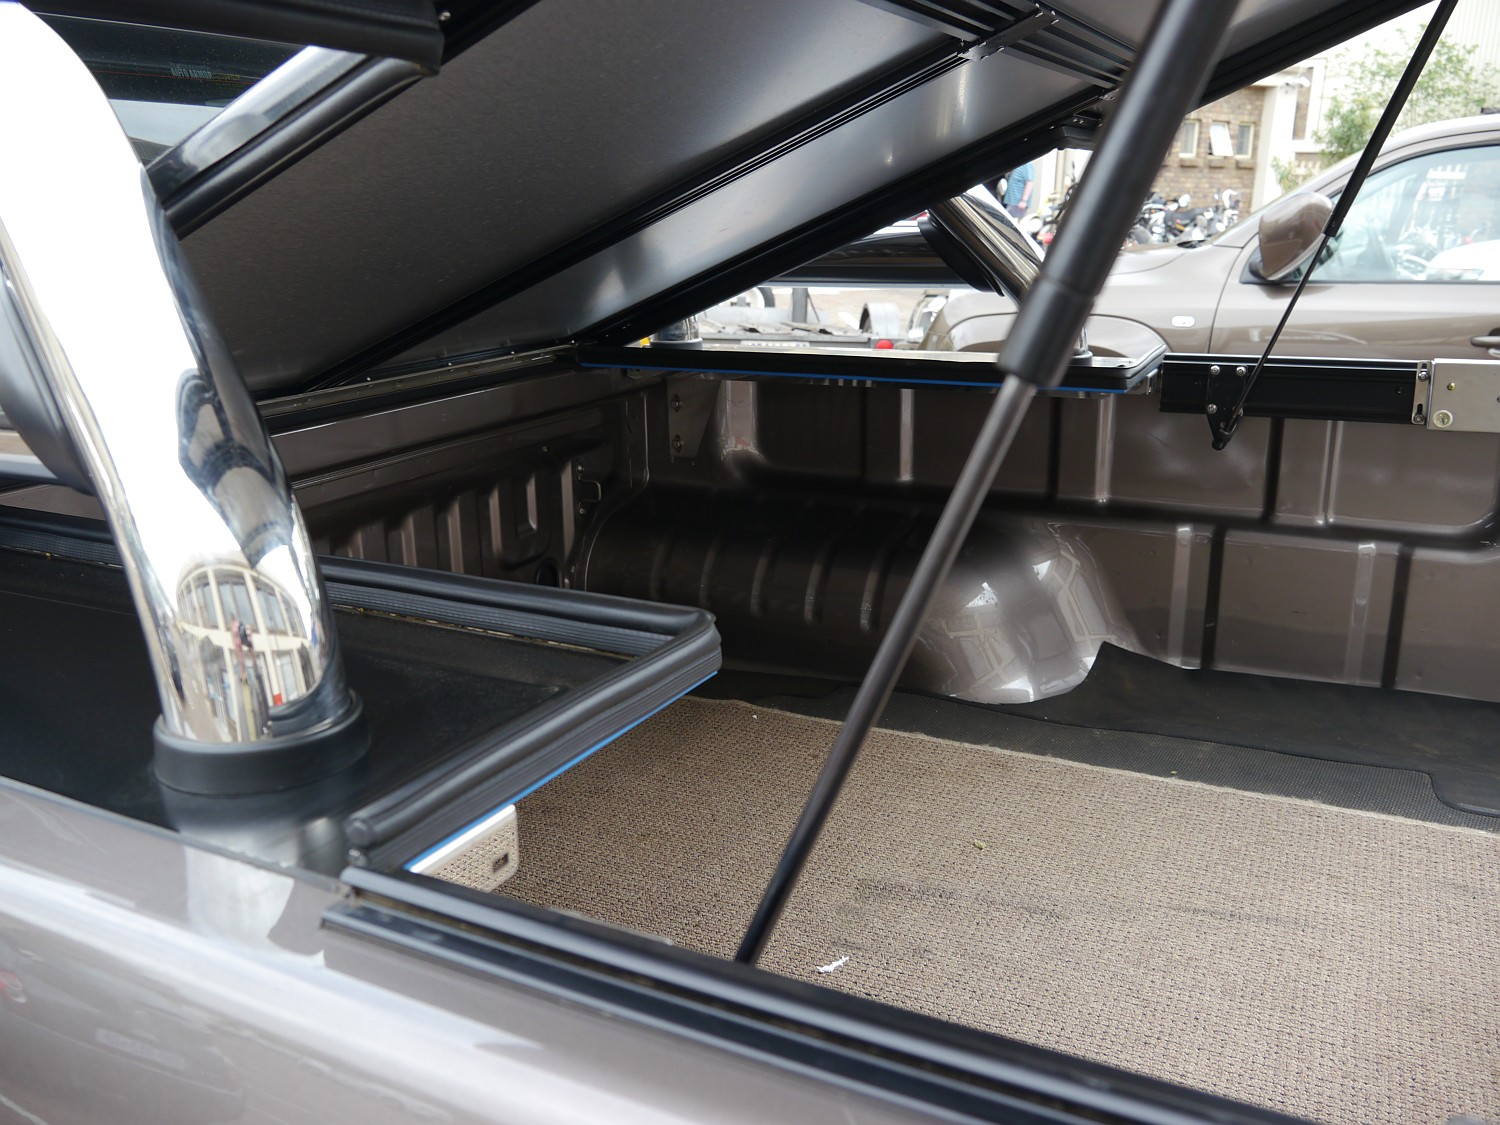 Rigidek Laderaumabdeckung - Isuzu D-Max - Double Cab mit Sports Bar 1005.JPG